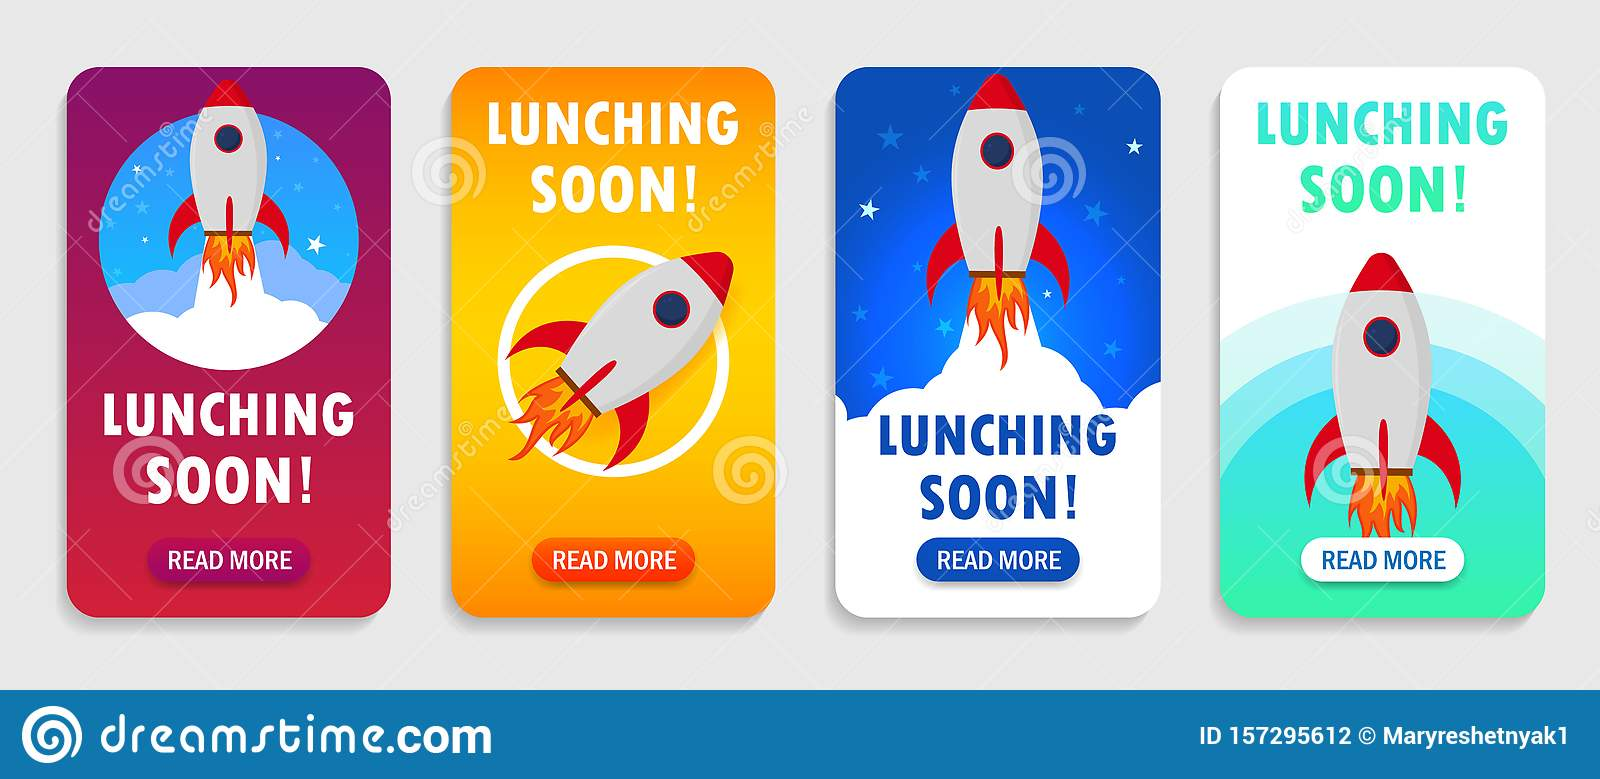 Launch Rocket With Launching Soon Interface For Mobile App Smart Phones Startup Rocket Banner With Launching Soon Shuttle In Stock Illustration Illustration Of Cartoon Design 157295612